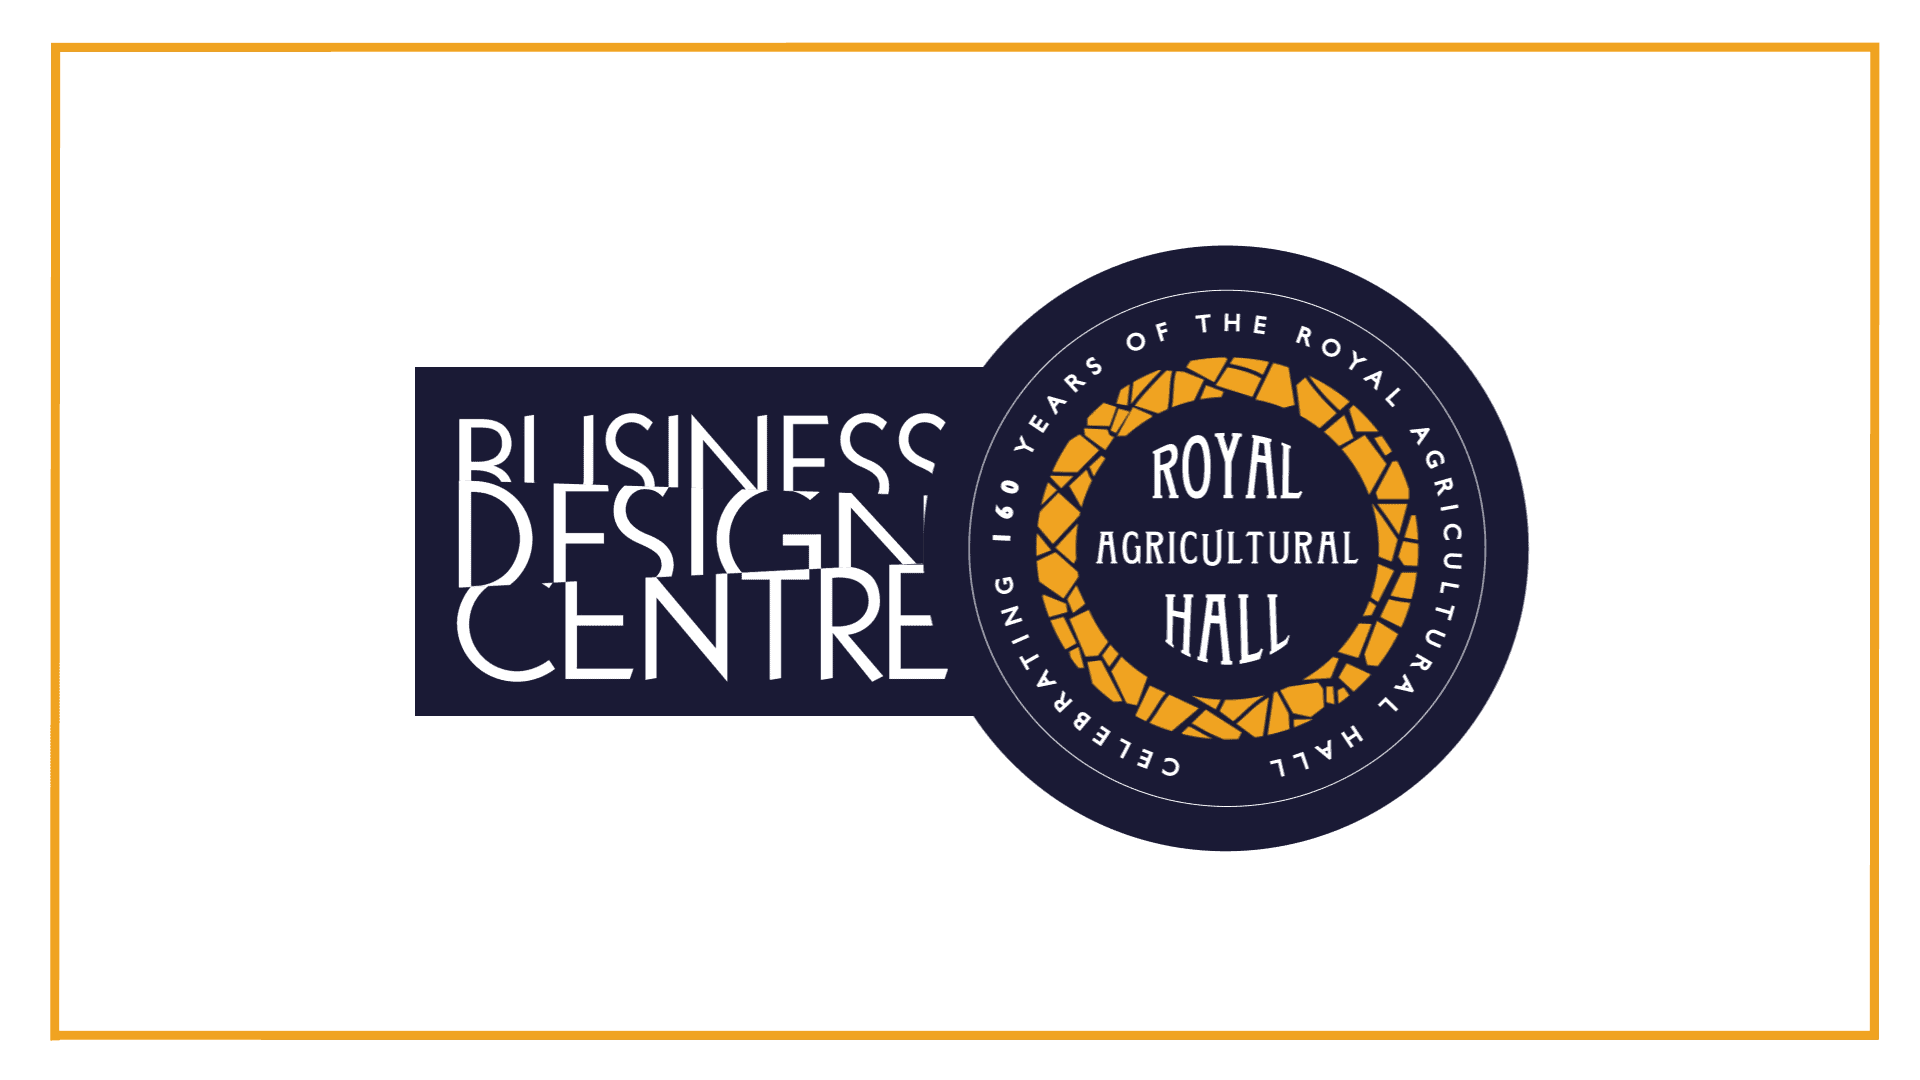 The History of the Business Design Centre, part 1: The Beginning